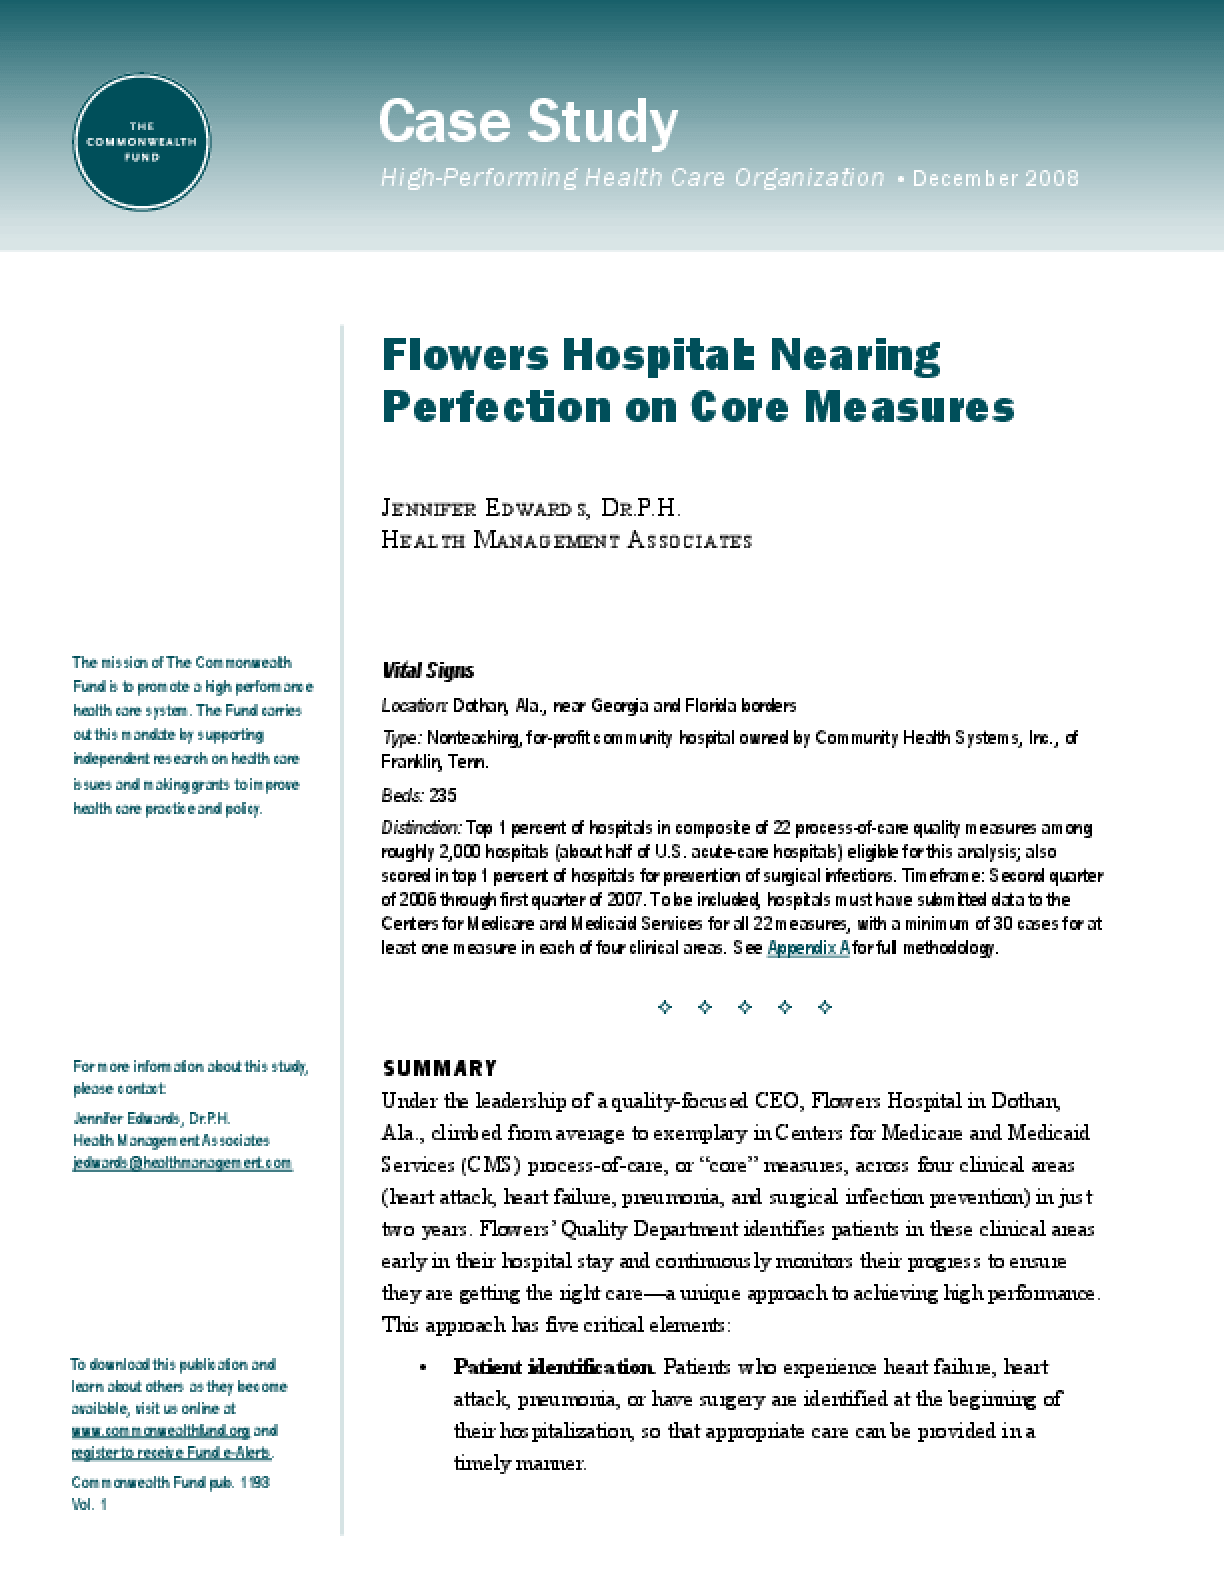 Flowers Hospital: Nearing Perfection on Core Measures